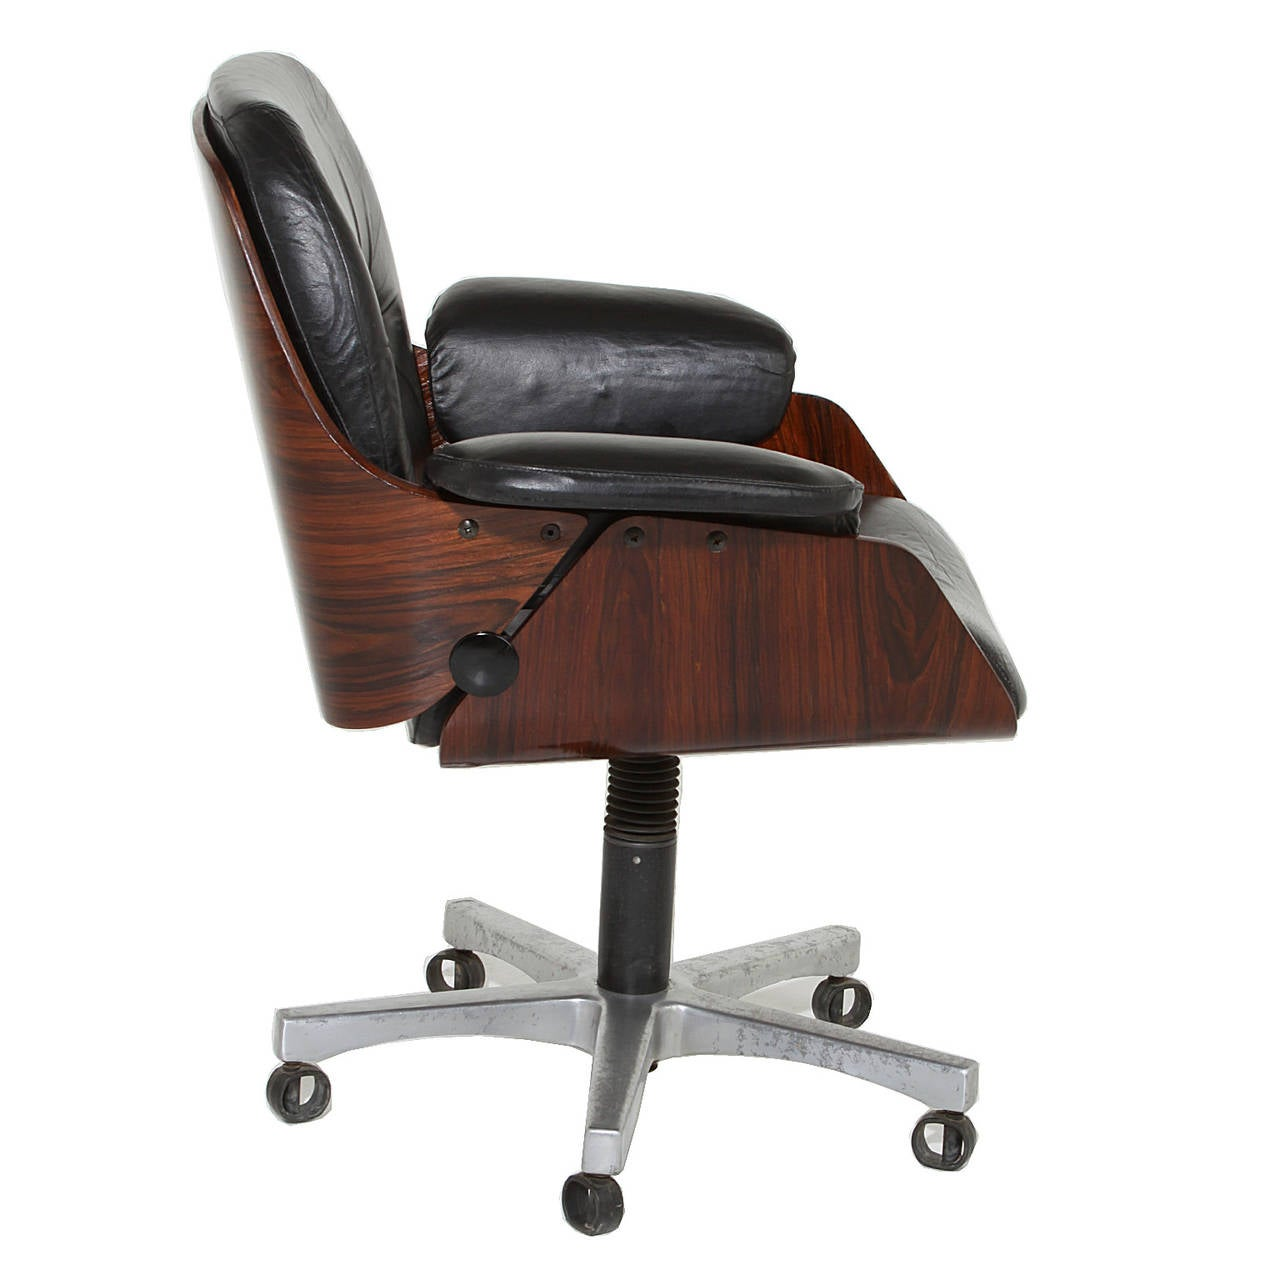 this vintage office chair in rosewood and black leather is no longer